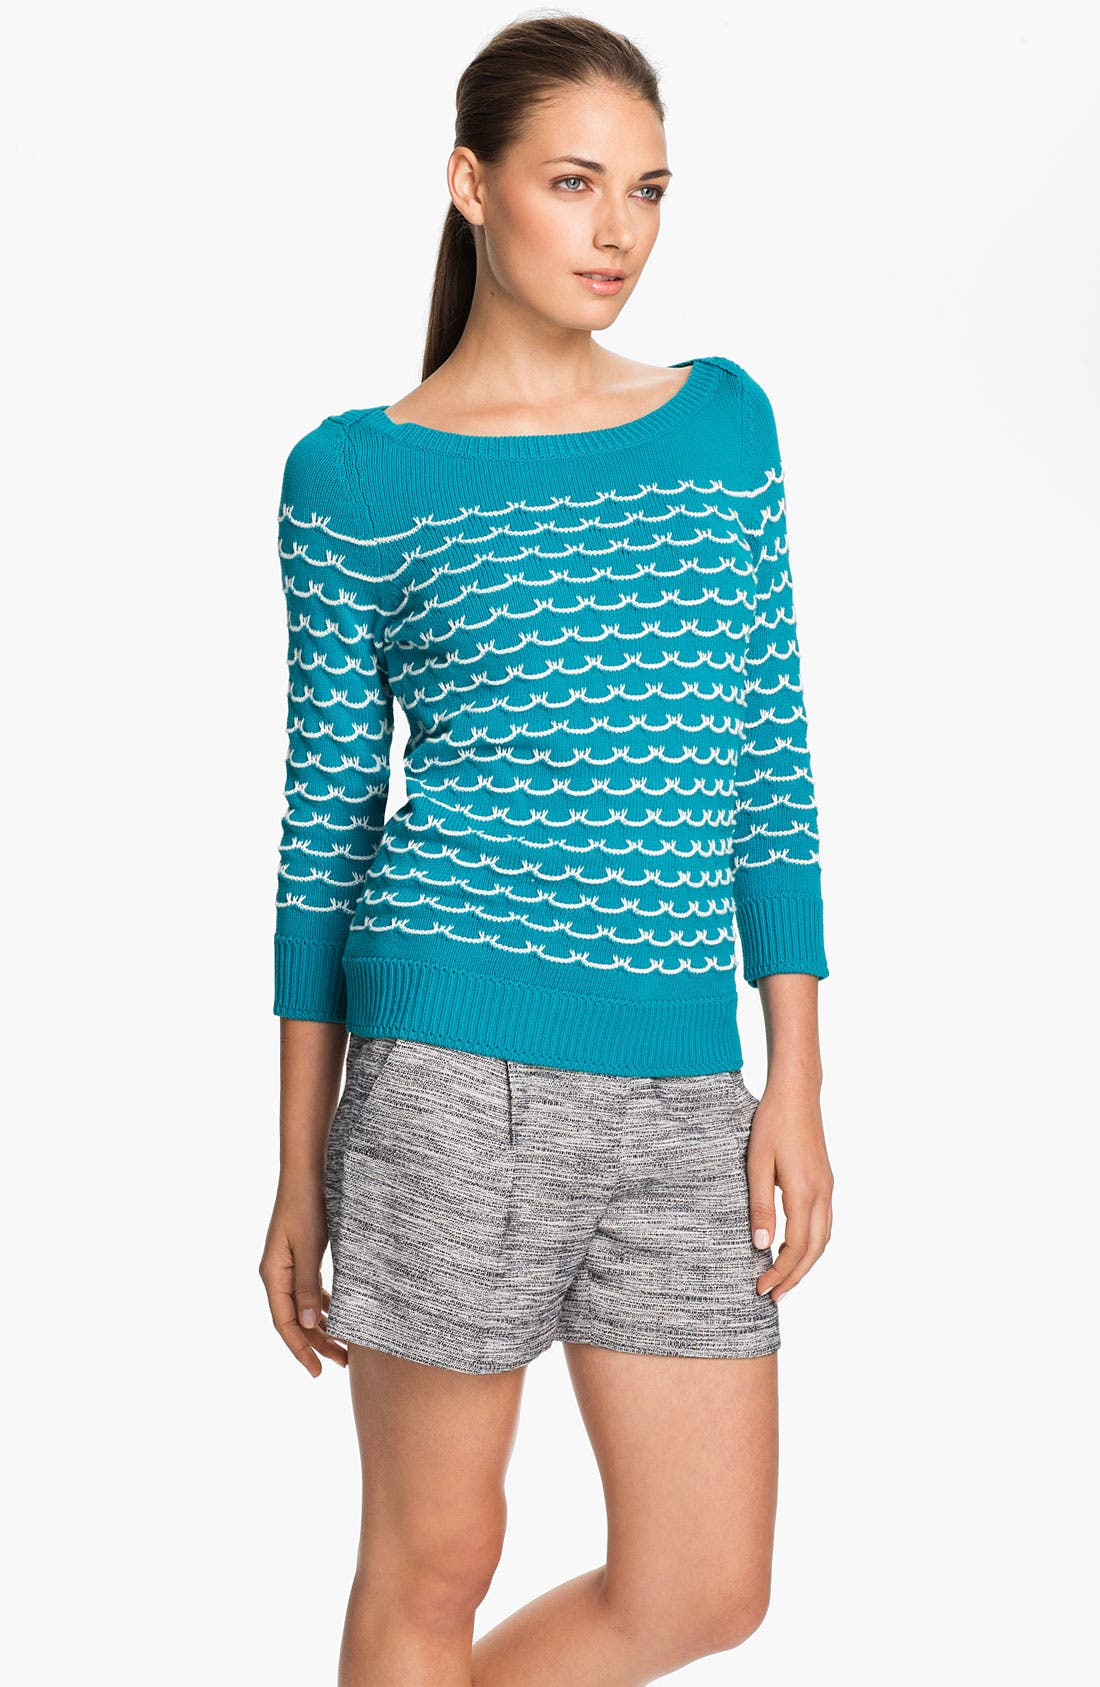 Alternate Image 1 Selected - Milly 'Sailor Stitch' Sweater